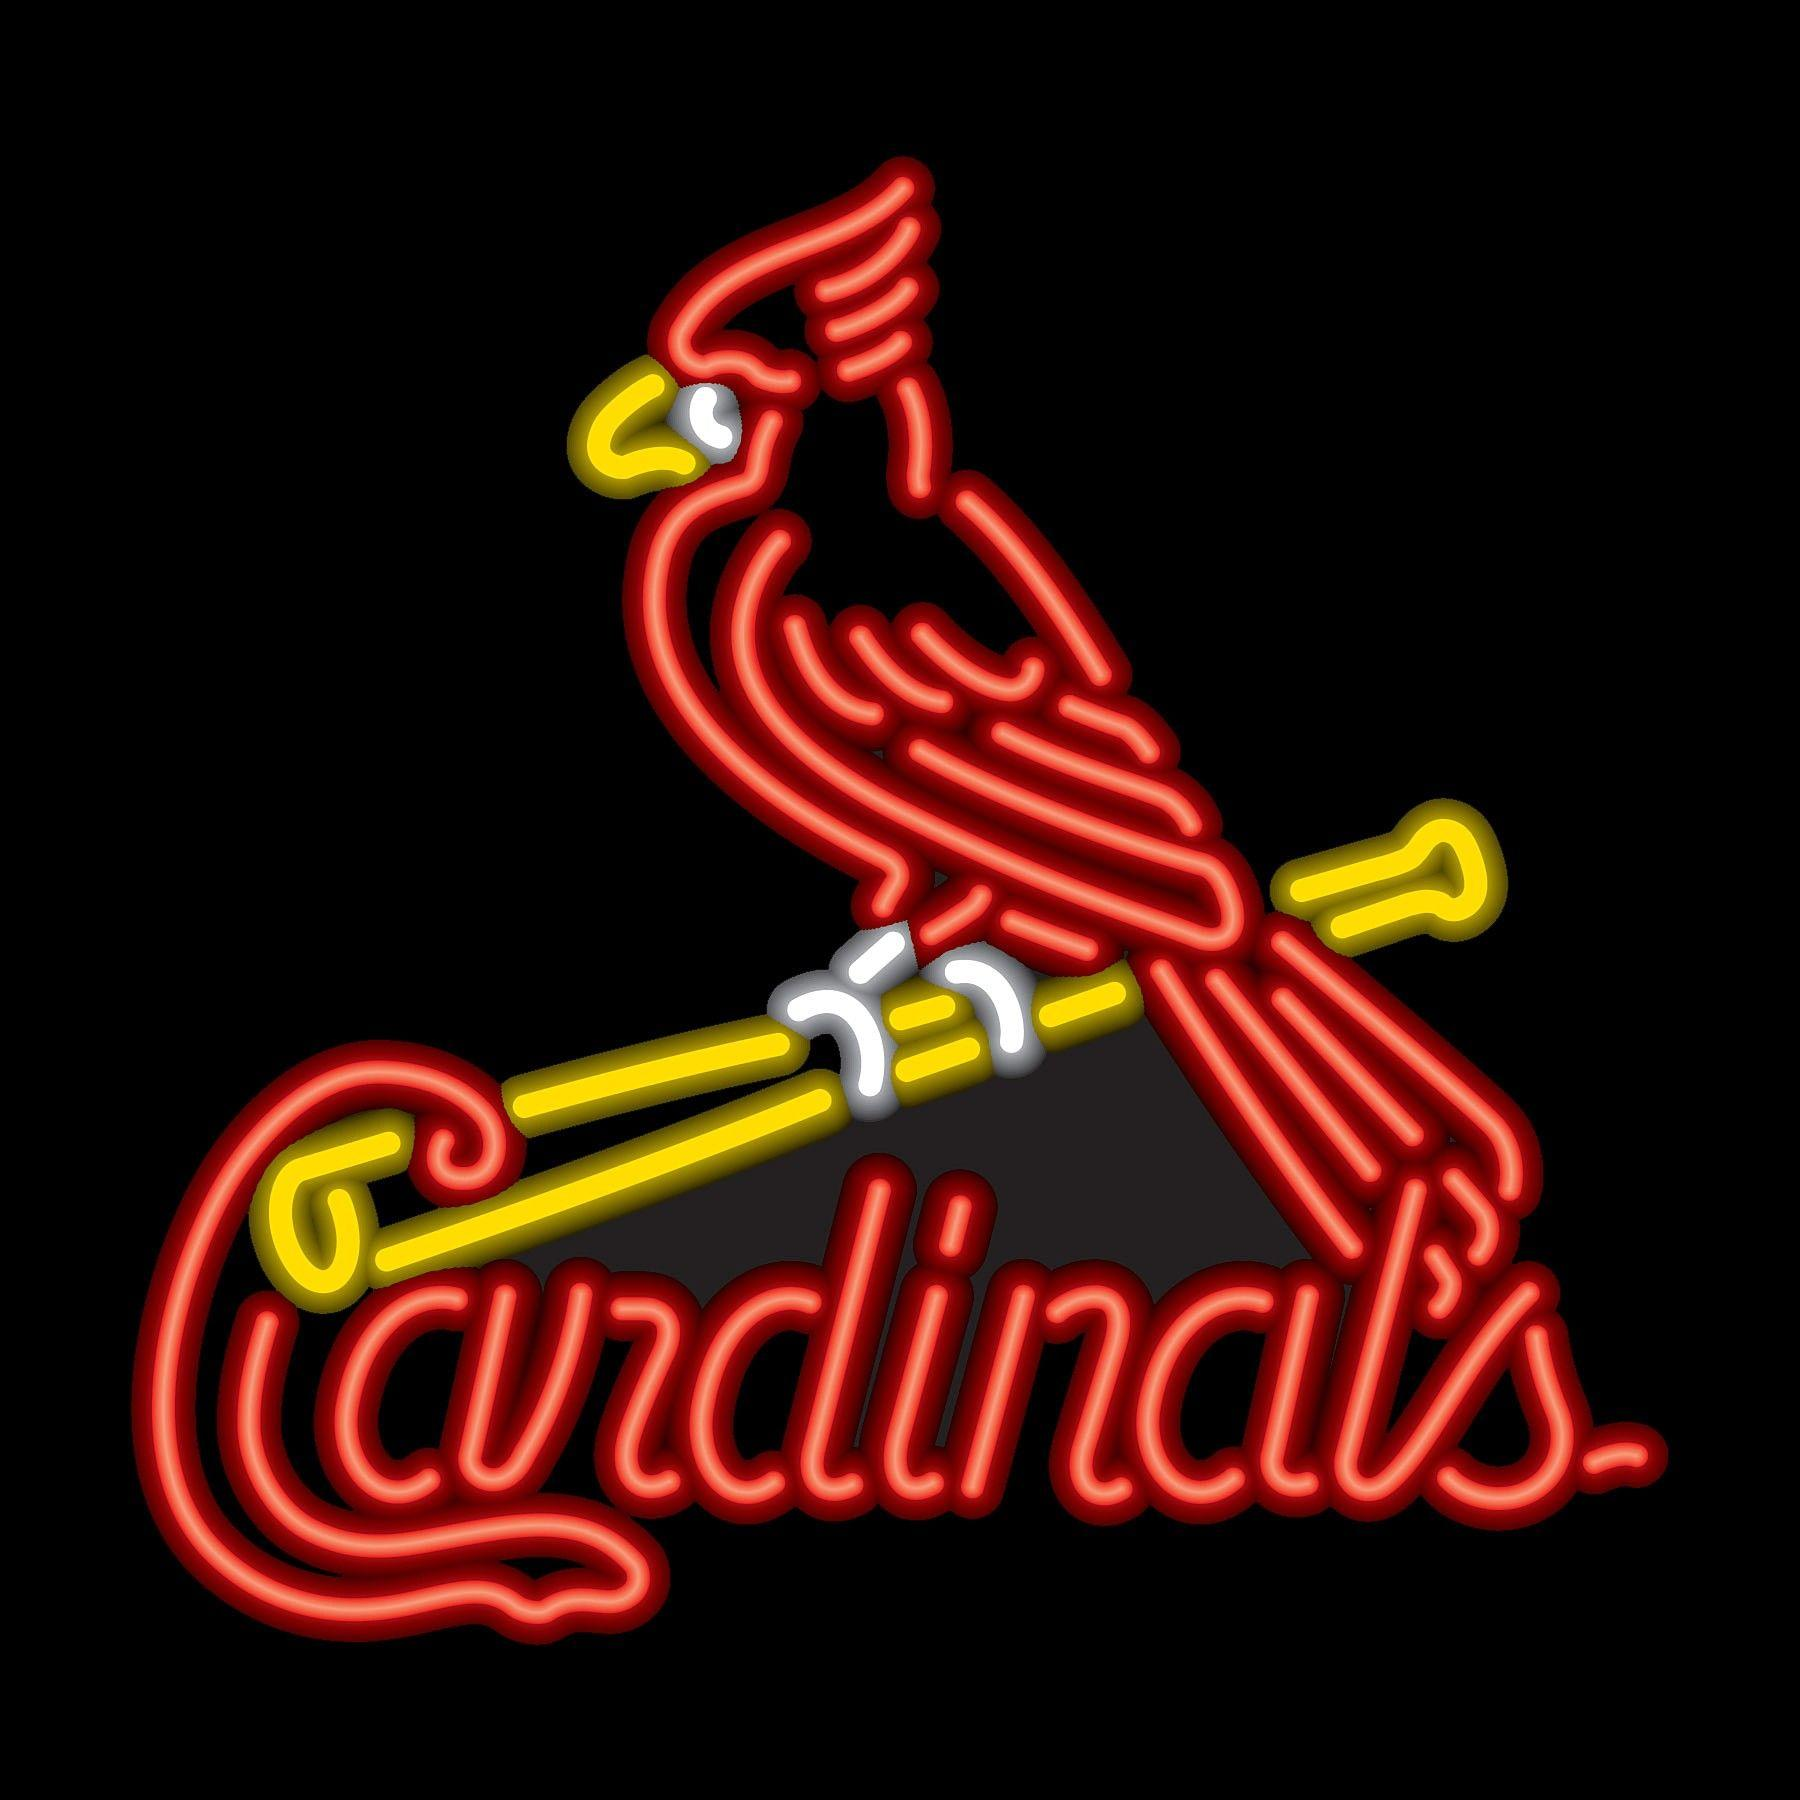 New St. Louis Cardinals background | St. Louis Cardinals wallpapers